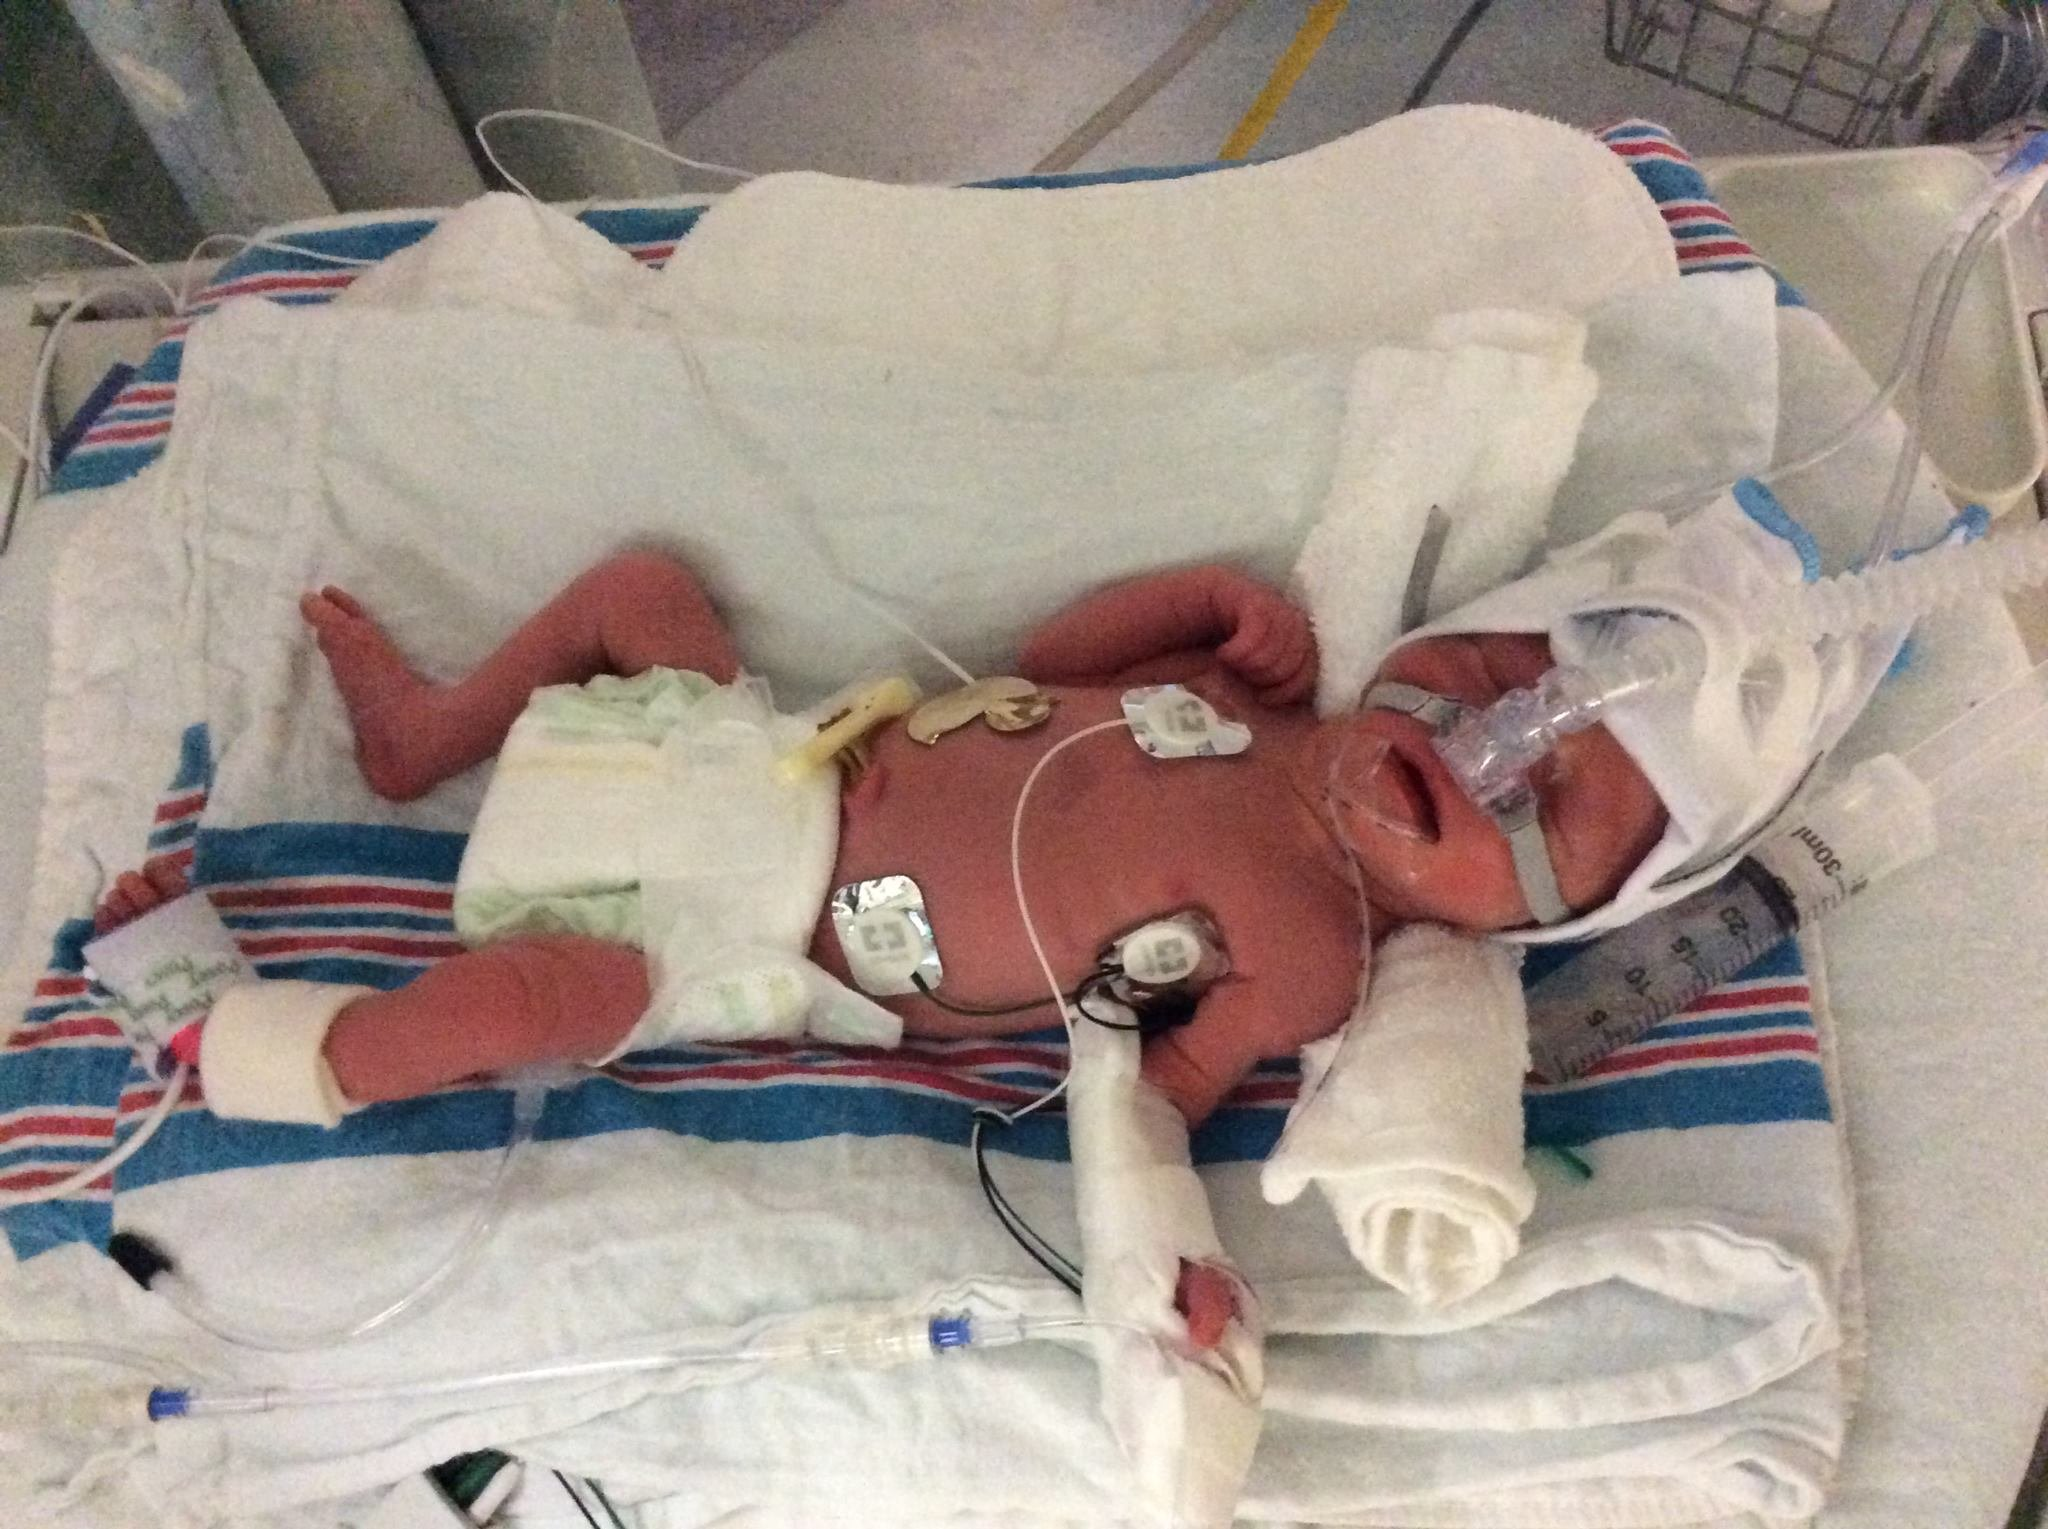 A Hannibal baby born six weeks early receives care in a St. Louis hospital.